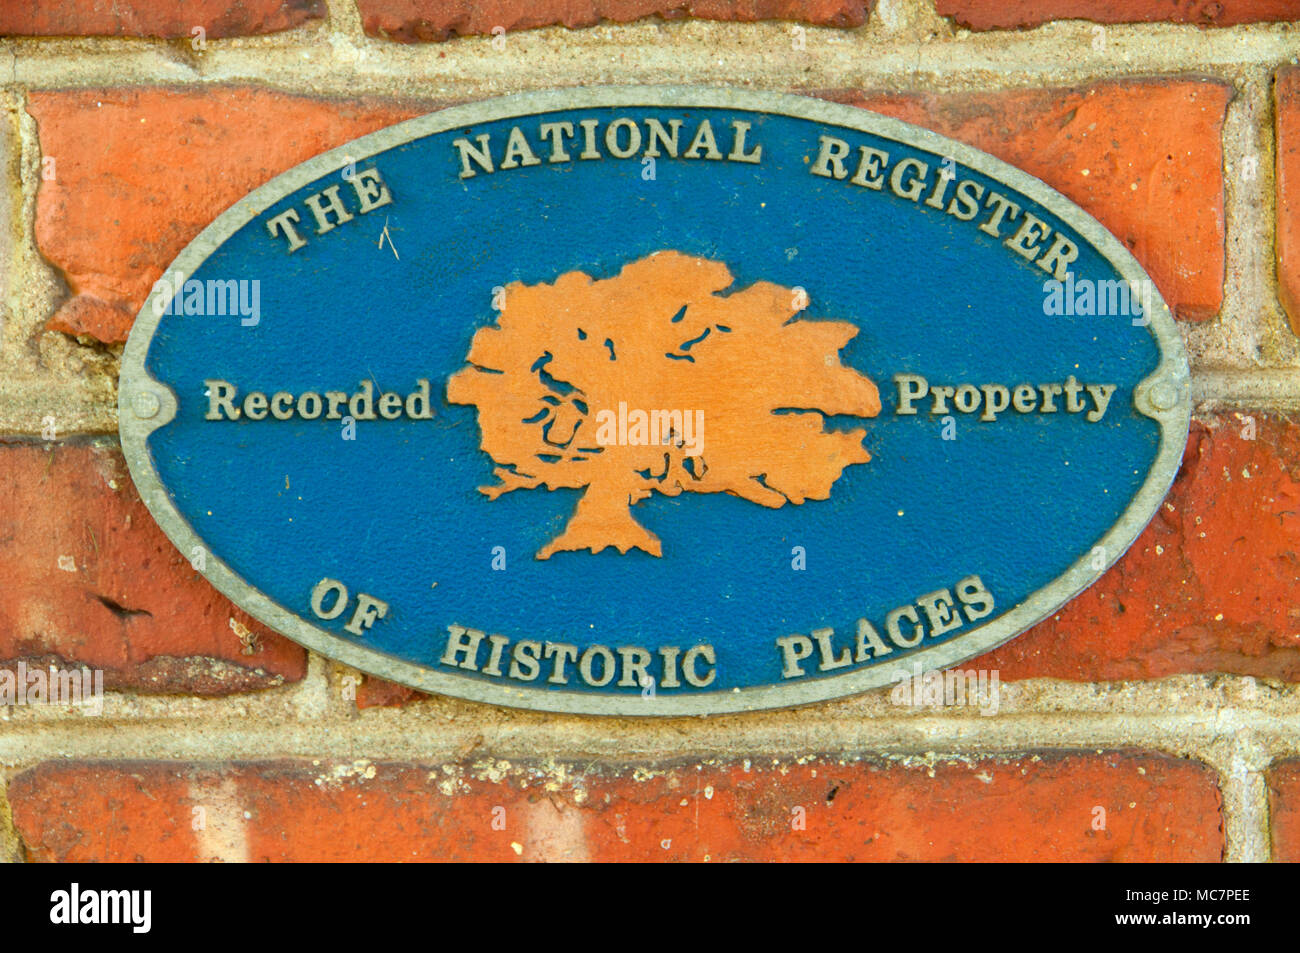 Chaffee House National Register of Historic Places marker, Windsor Historical Society, Windsor, Connecticut - Stock Image